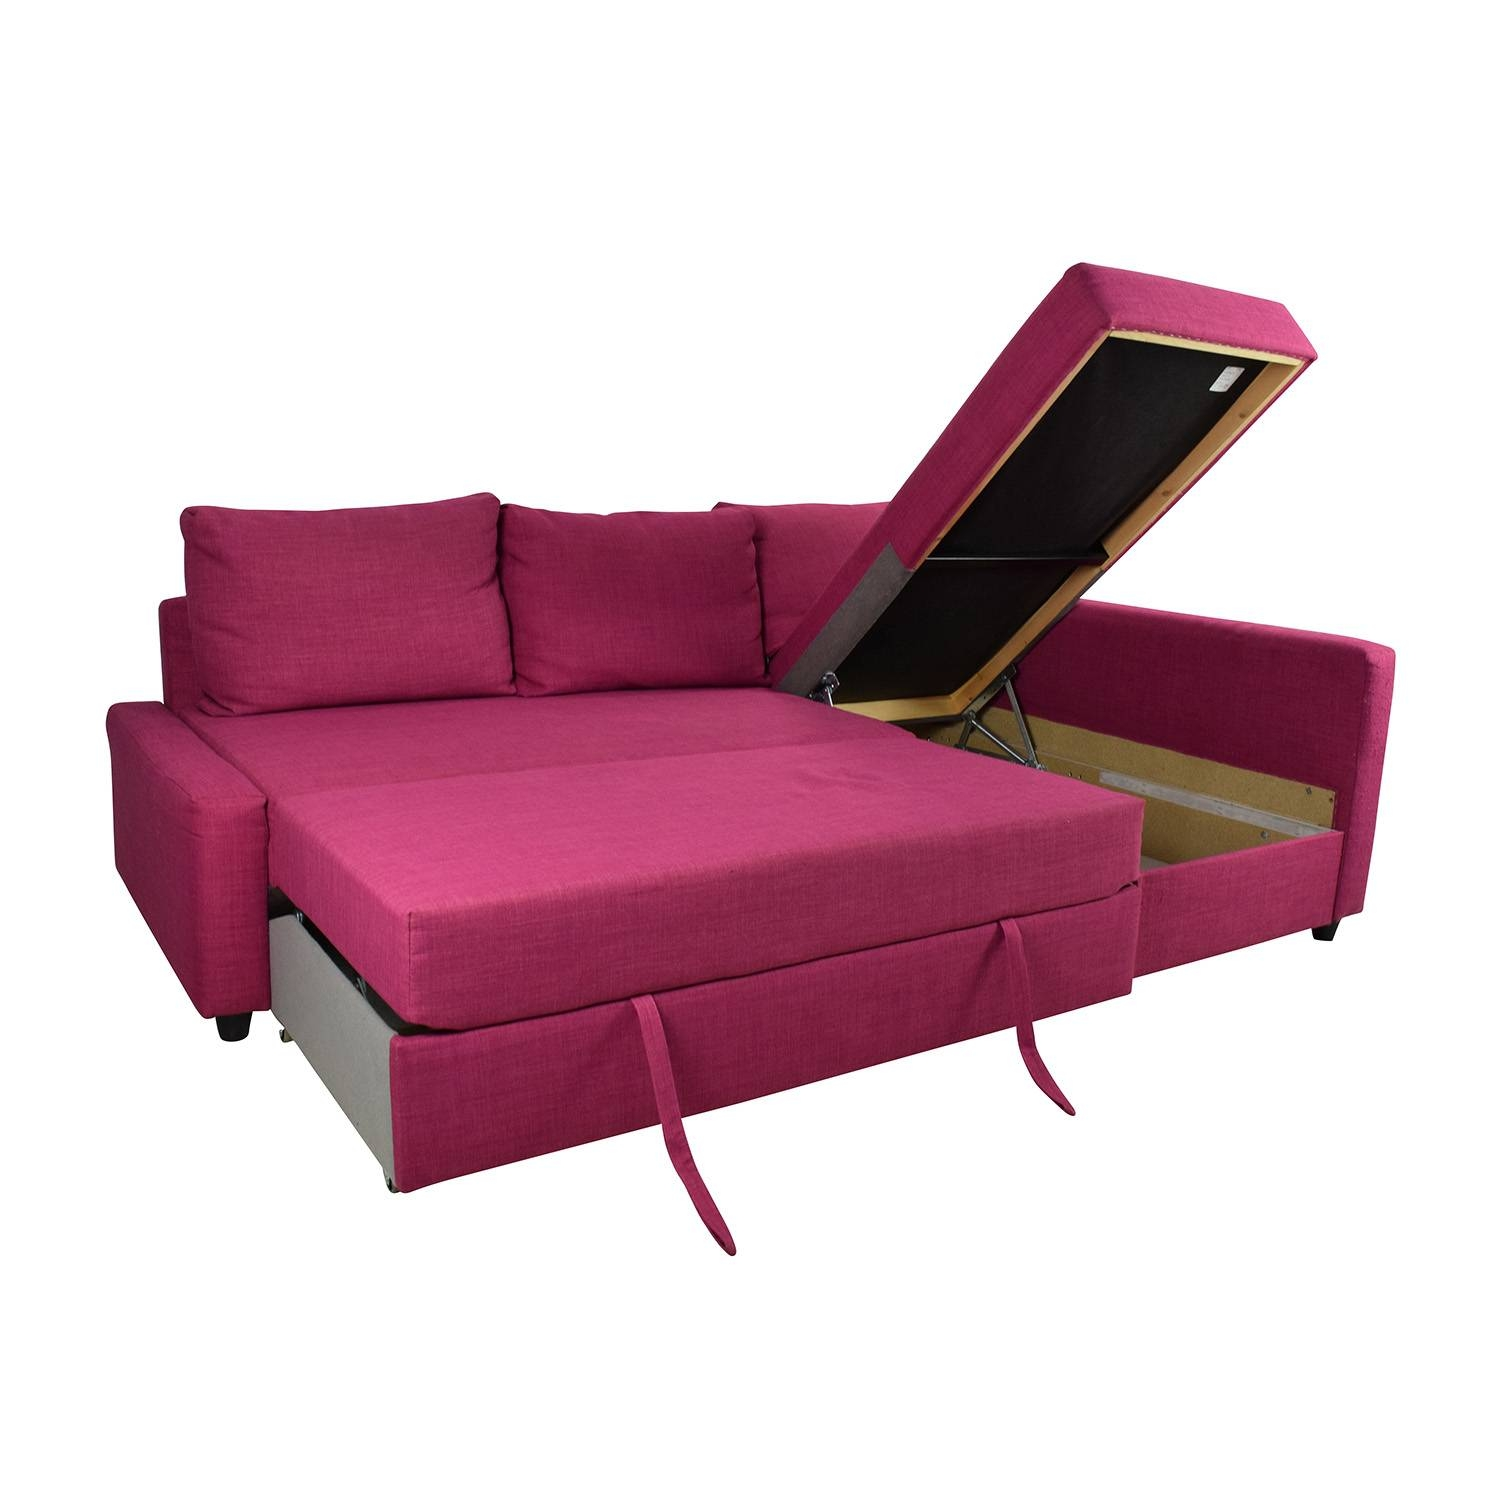 66% Off - Ikea Ikea Friheten Pink Sleeper Sofa / Sofas inside Red Sectional Sleeper Sofas (Image 5 of 30)